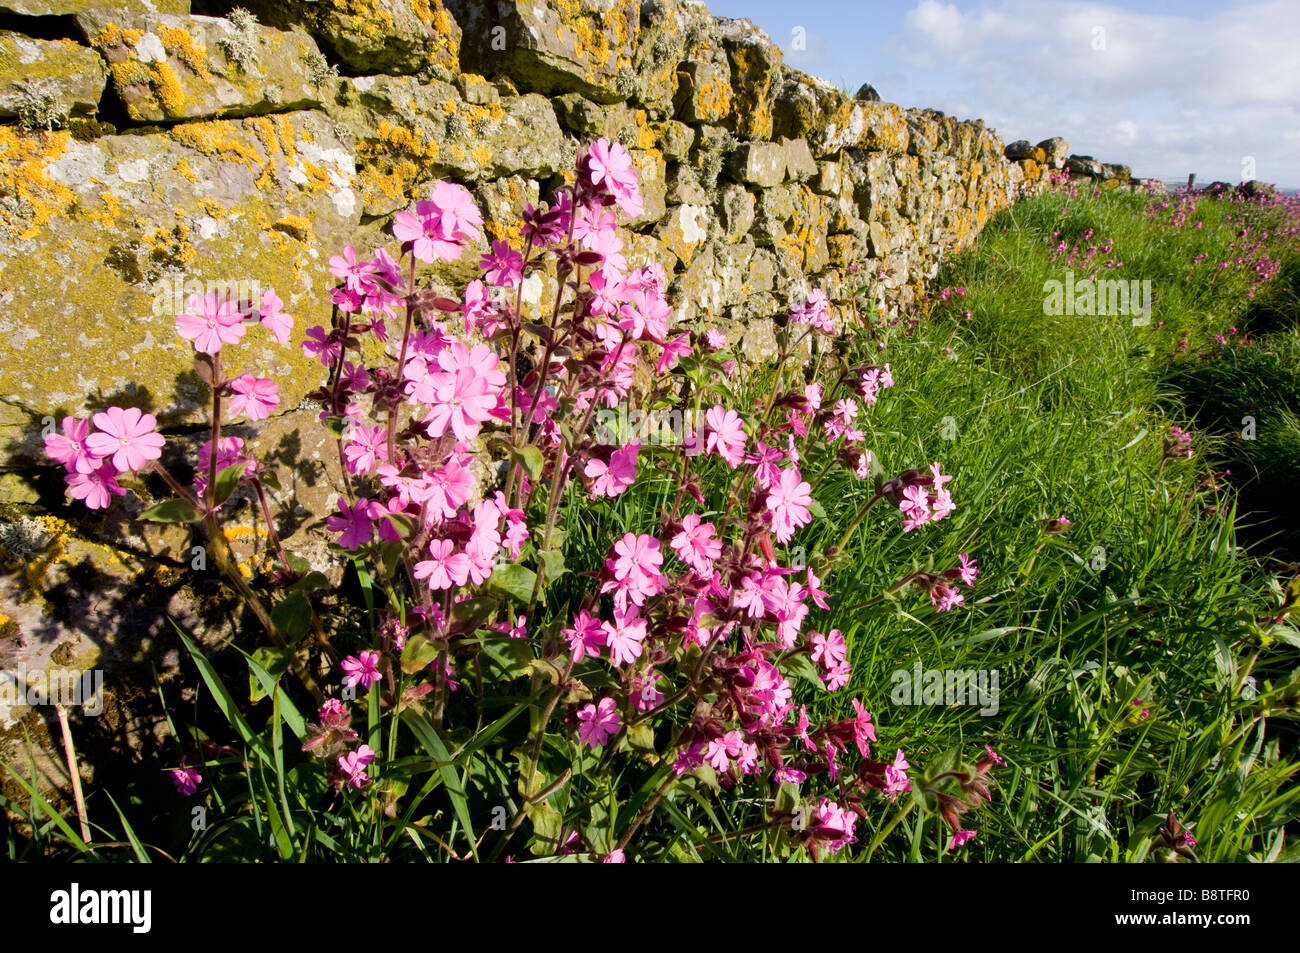 Red campion, Silene dioica, wild flowers growing by a drystone wall on the coast of Aberdeenshire, Scotland. Stock Photo